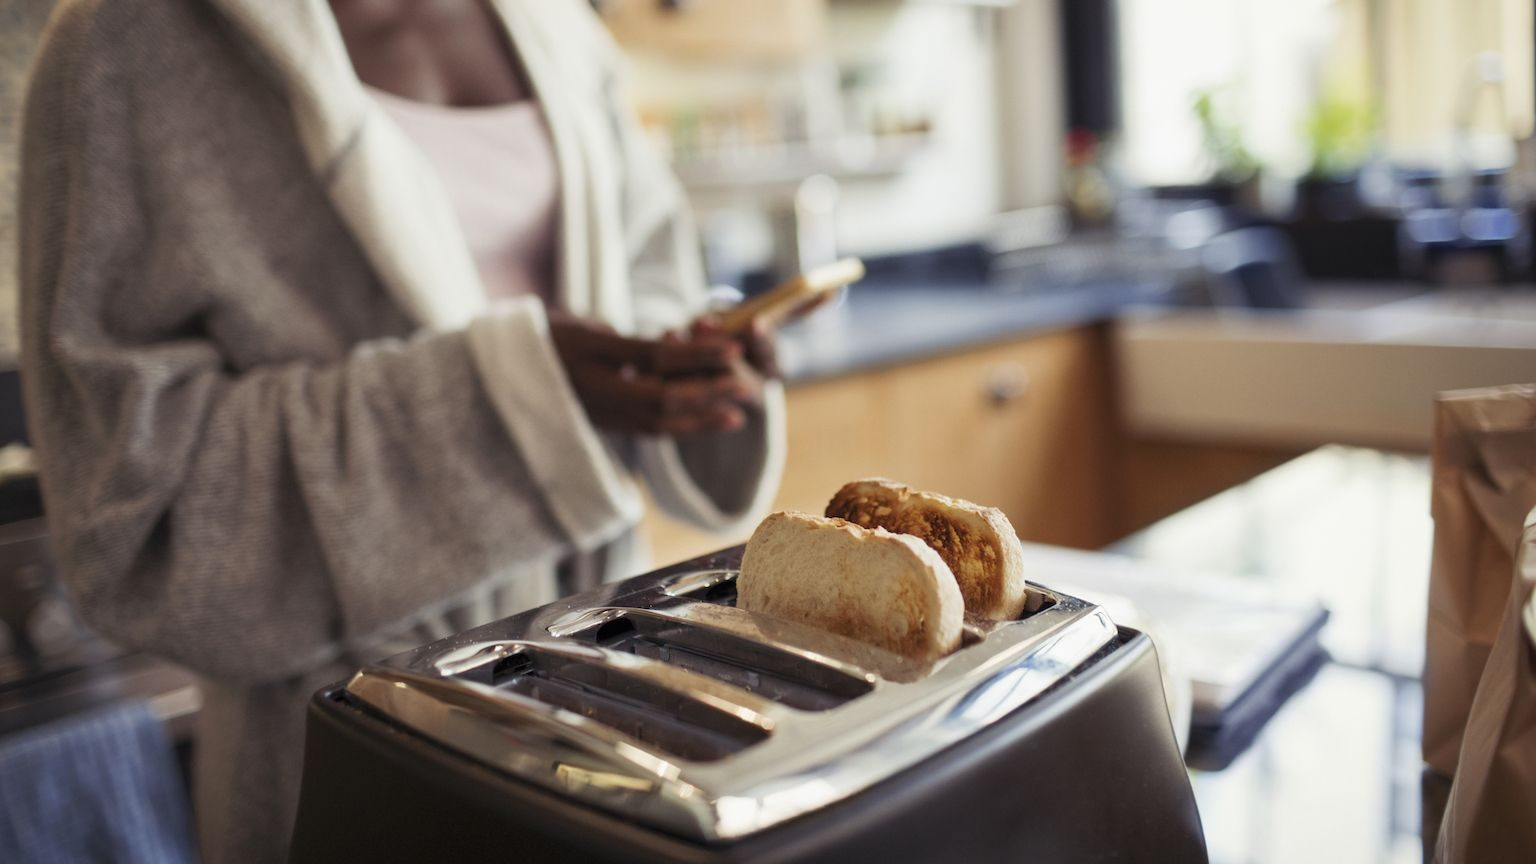 Close up of a woman toasting bread in a toaster while using her mobile phone.